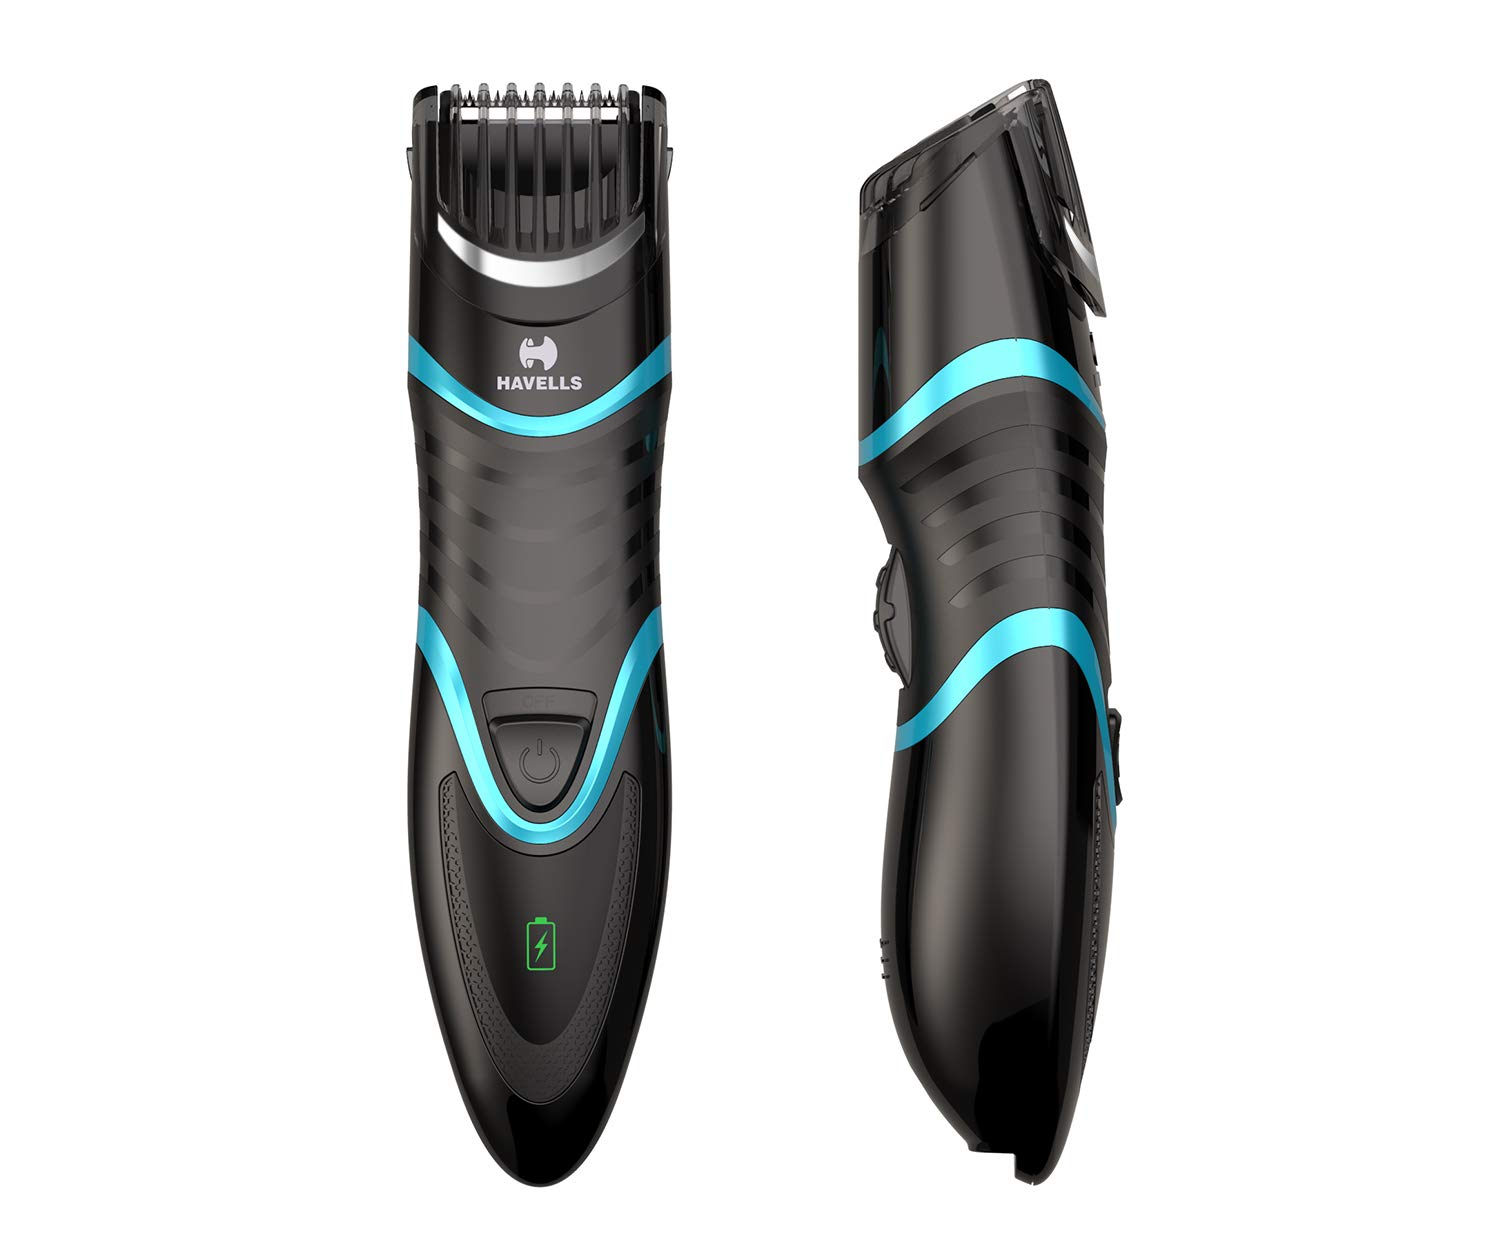 Havells BT9005 Adjustable Beard Trimmer